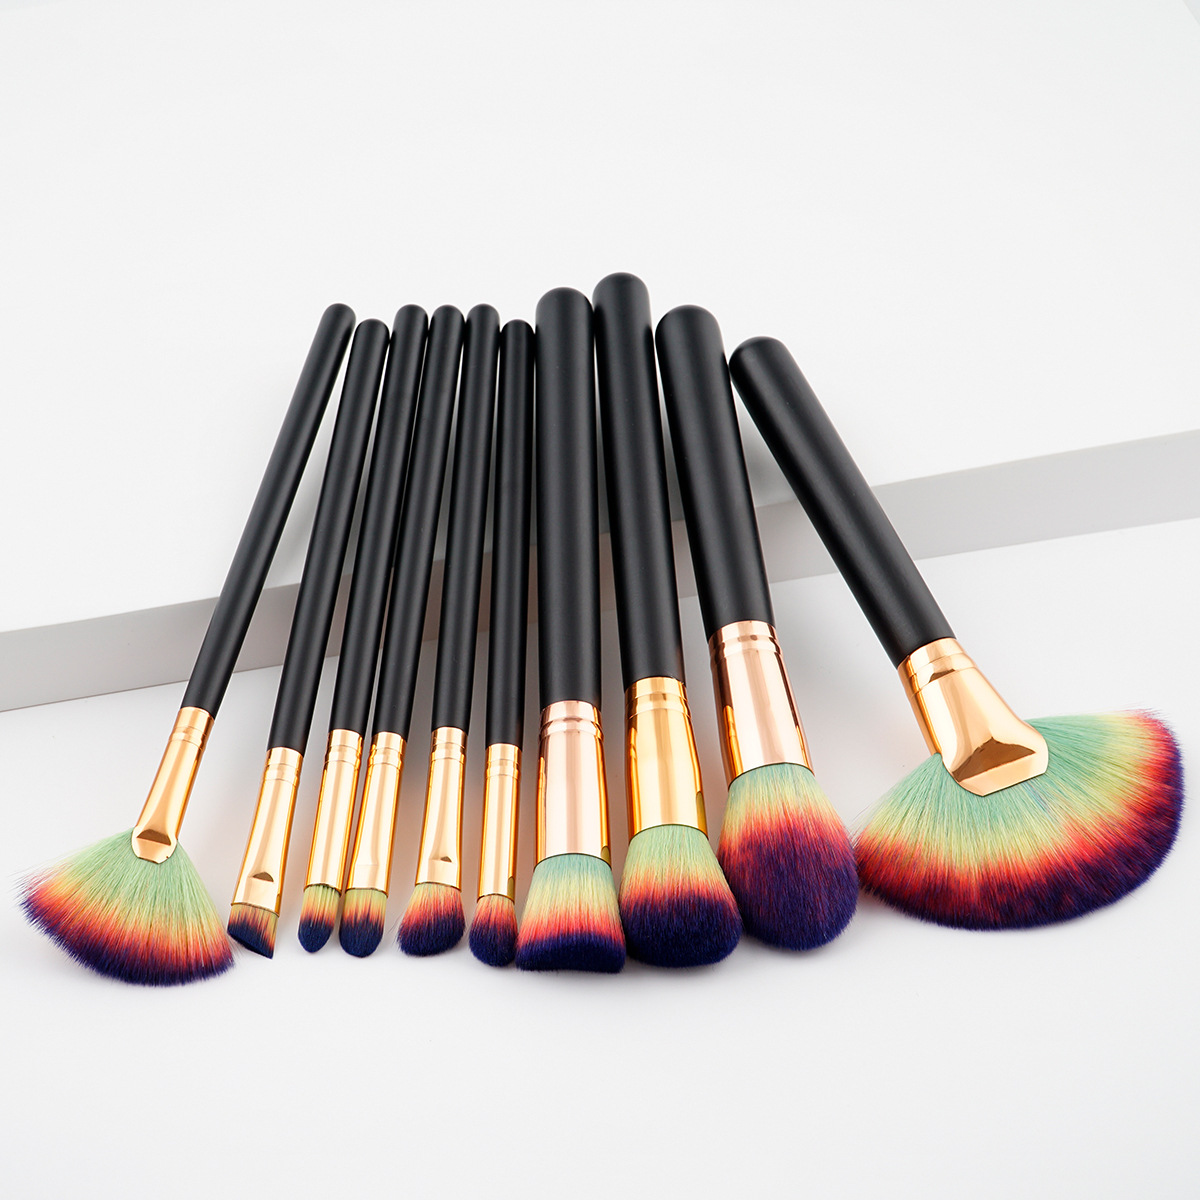 wooden handle make up brushes own brand 10-piece set highly requested on amazon ebay wish